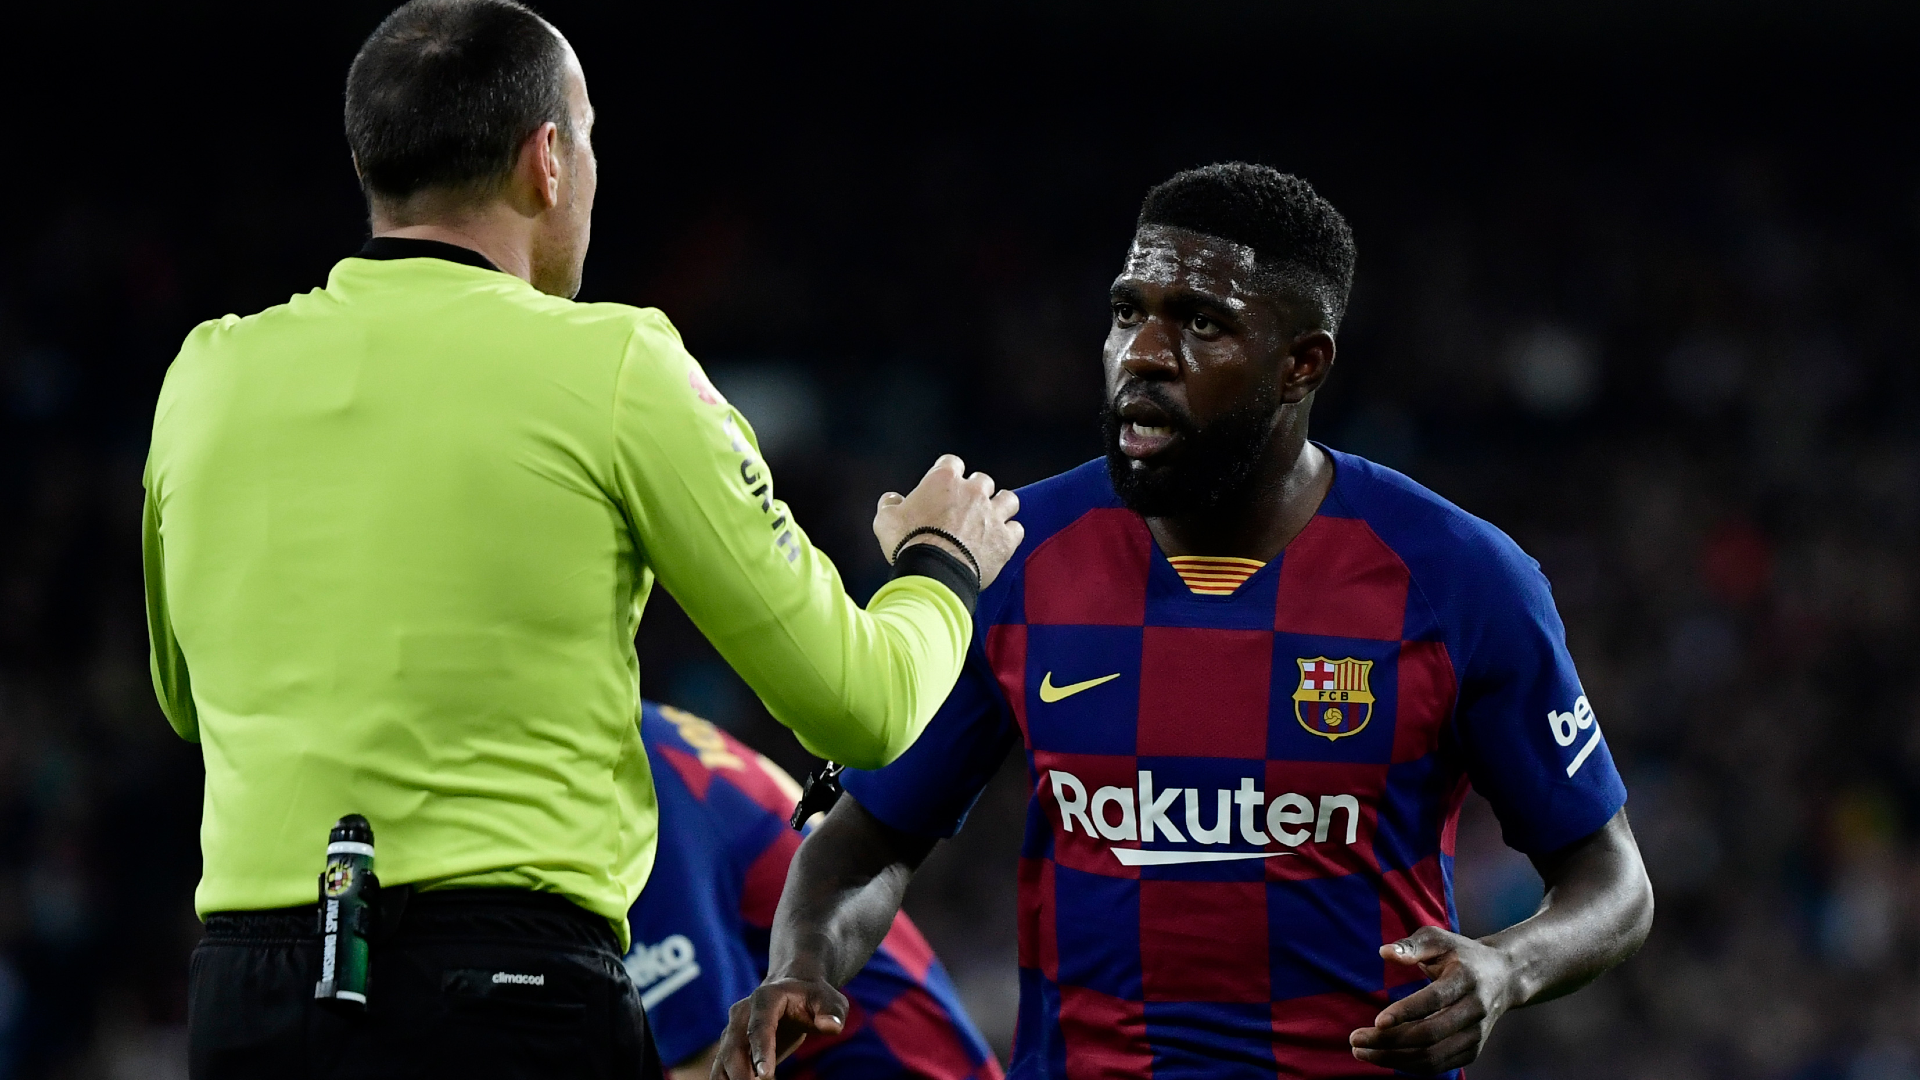 Transfer news and rumours LIVE: Umtiti wants Barcelona stay despite fan jeers